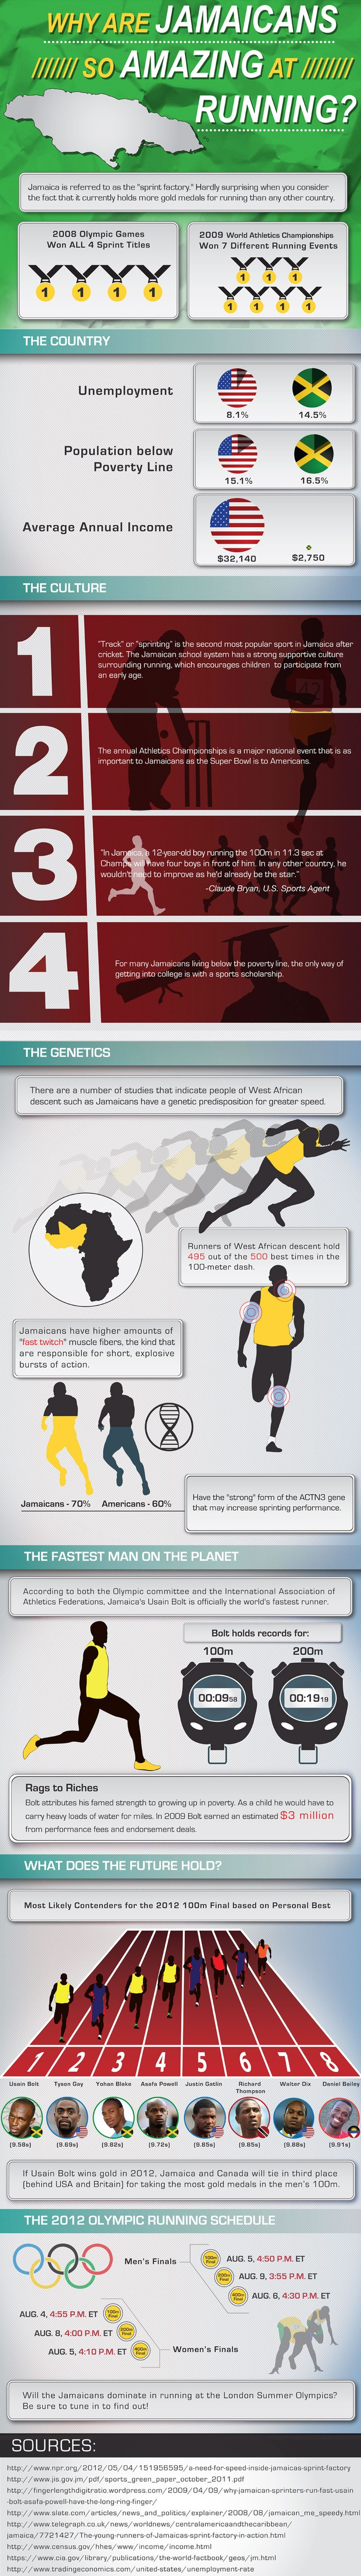 Why are jamaicans so amazing at running?